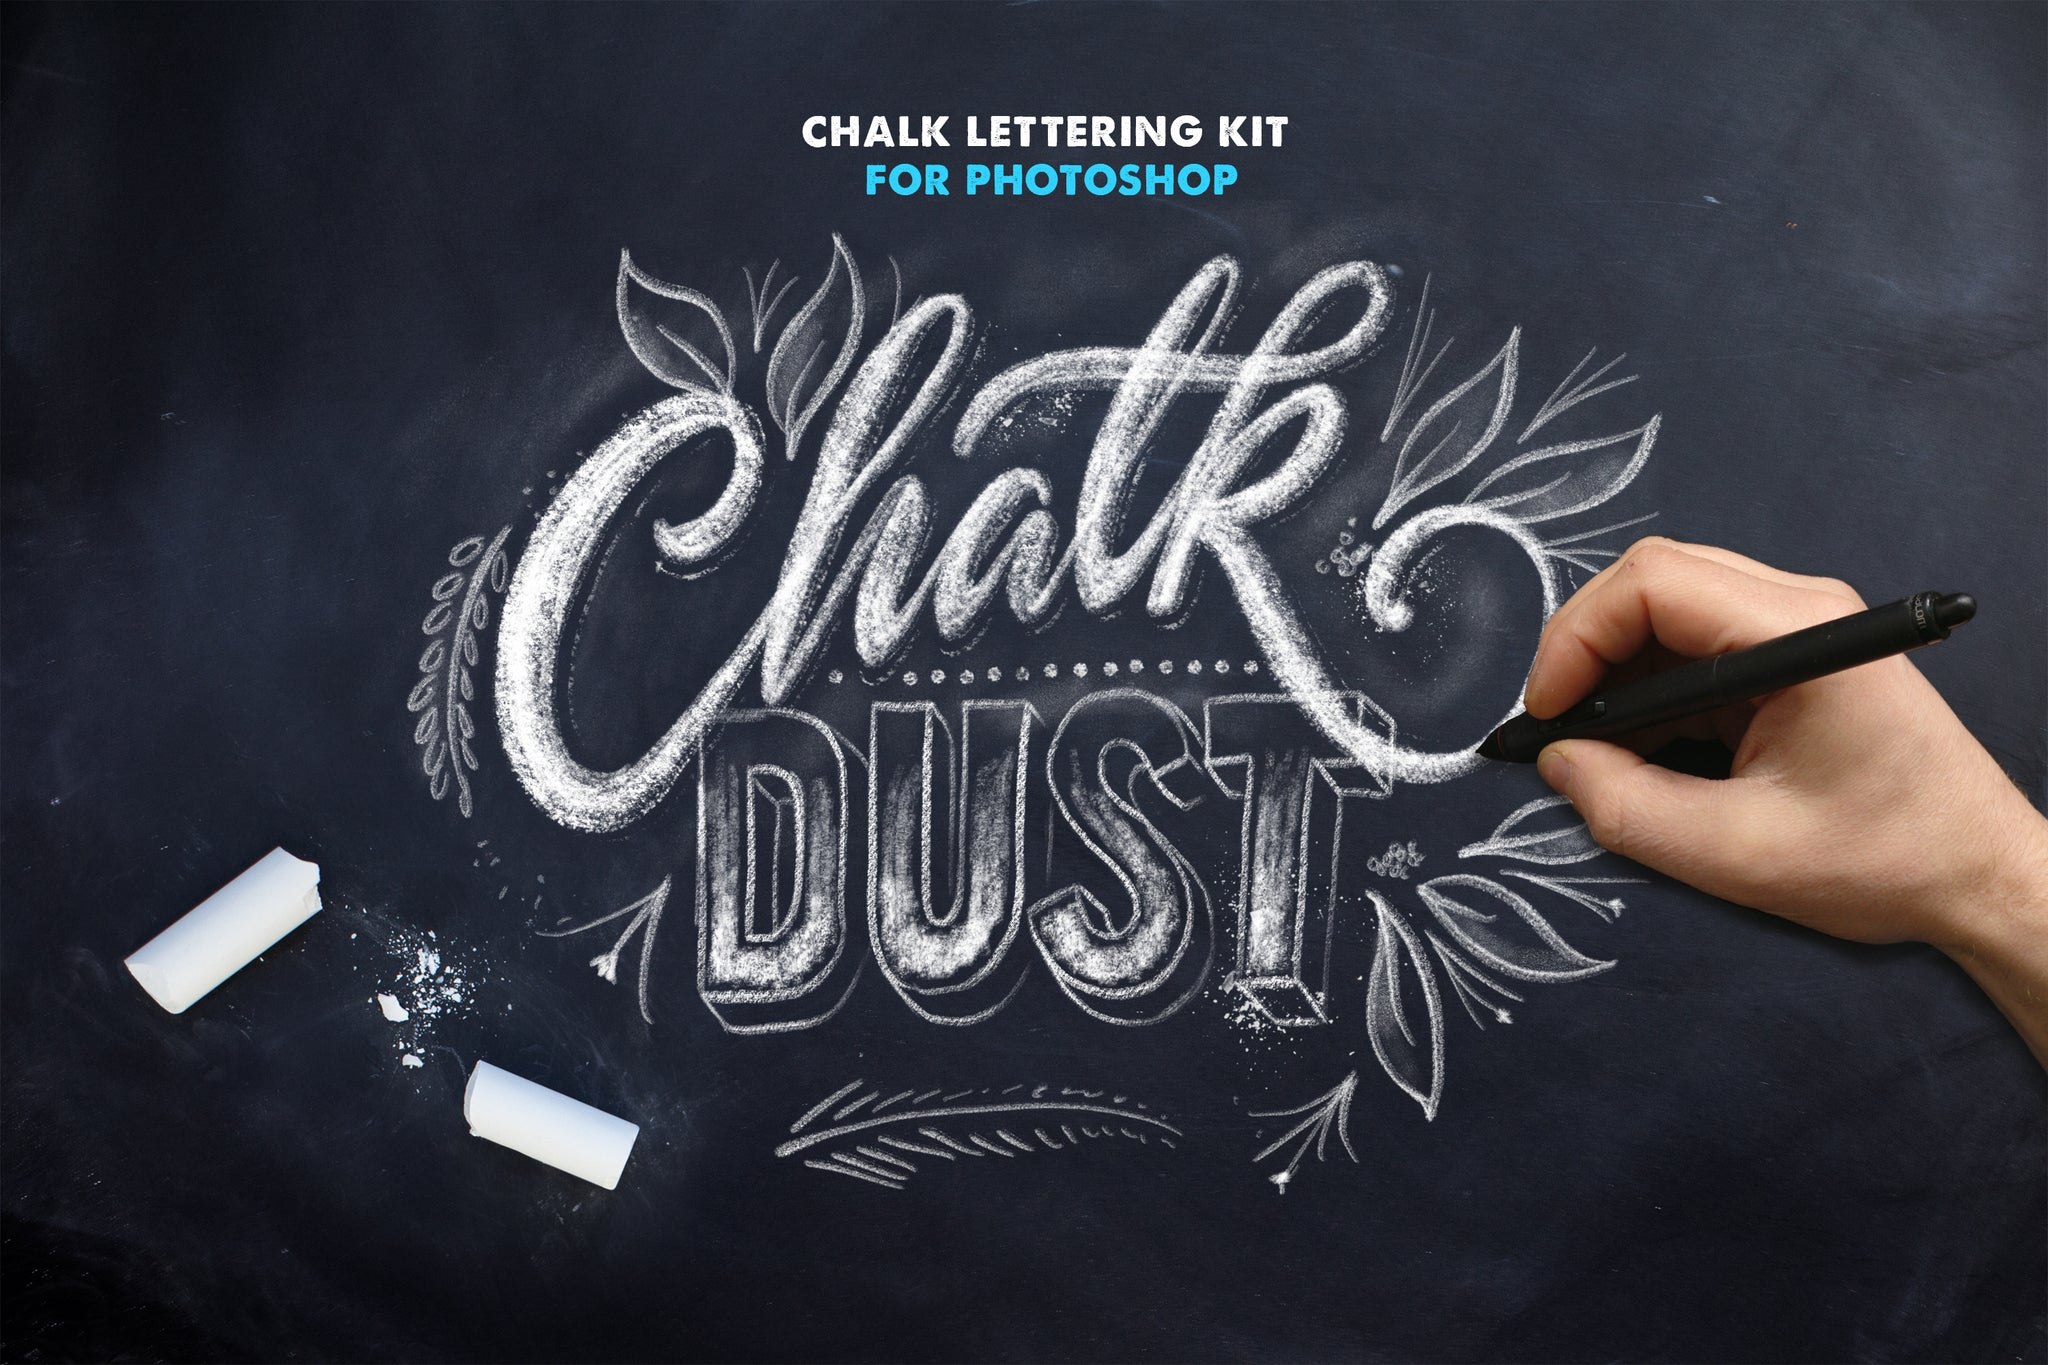 ChalkDust - Photoshop Lettering Kit